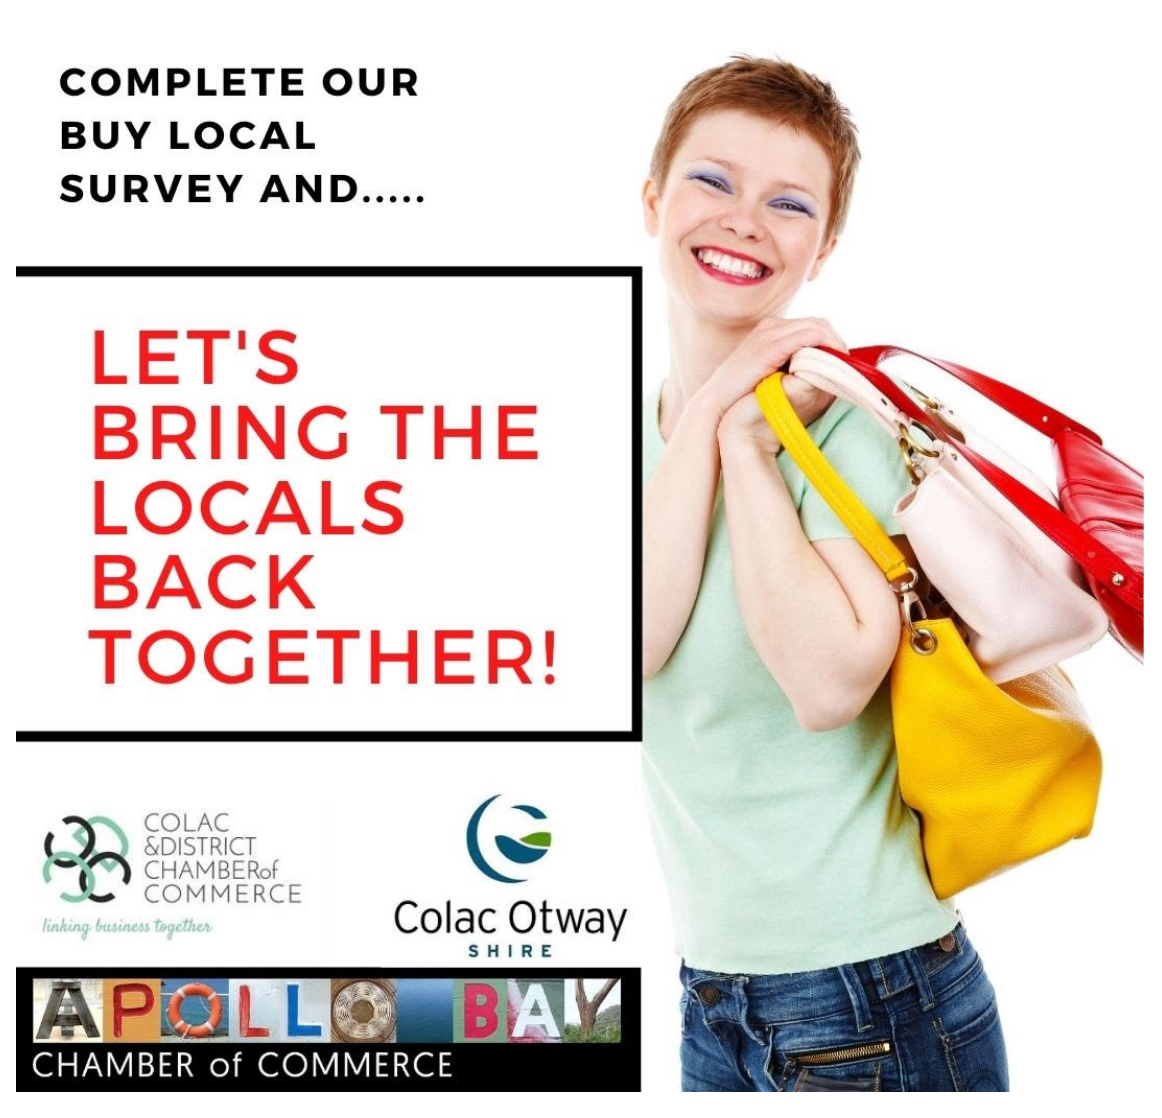 Complete our buy local survey